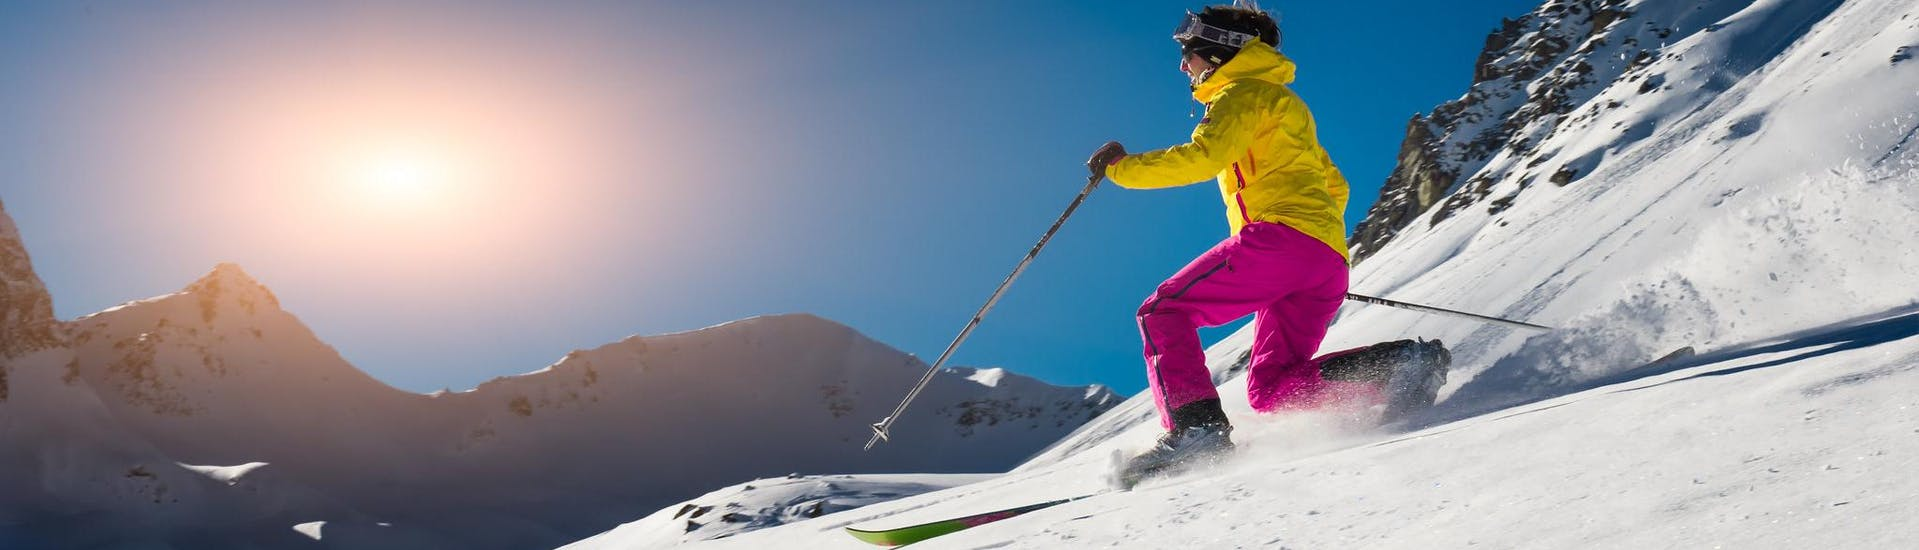 A skier is gliding down a ski slope in telemark position during one of the Private Telemark Skiing Lessons for All Levels with Snow Attitude Champéry.